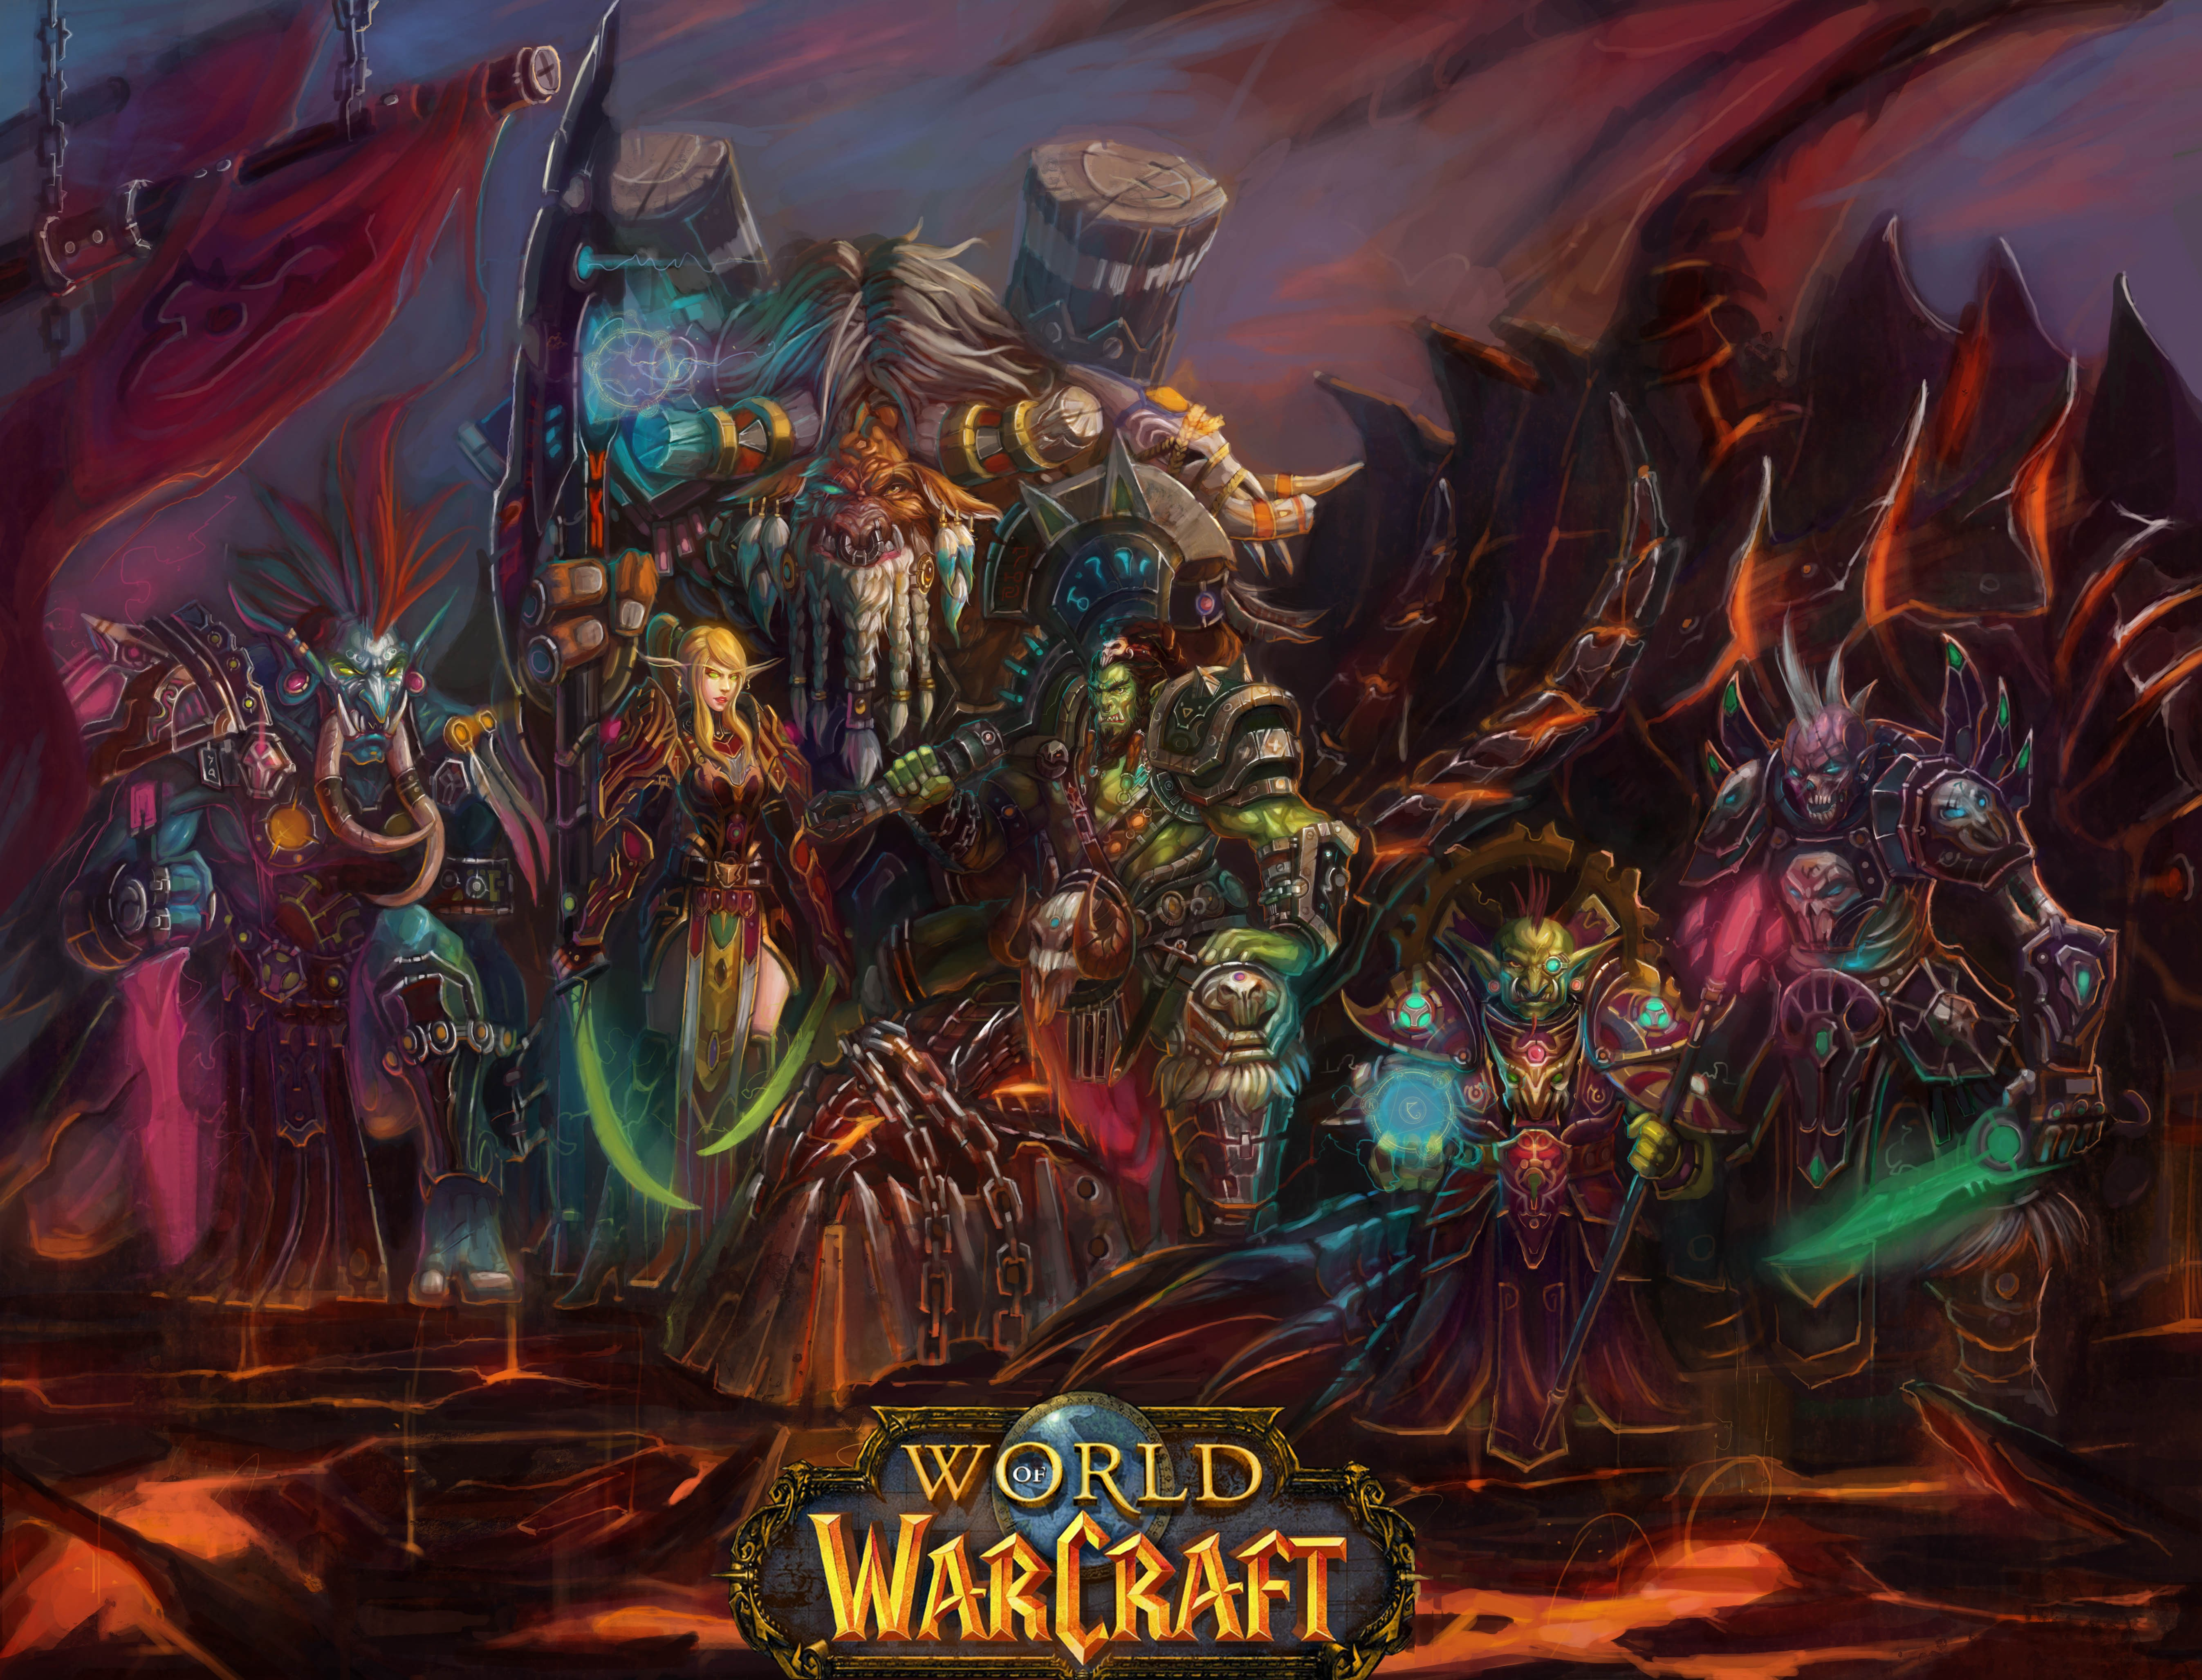 New 3d Wallpaper 1920x1080 World Of Warcraft Wallpapers Hd Desktop And Mobile